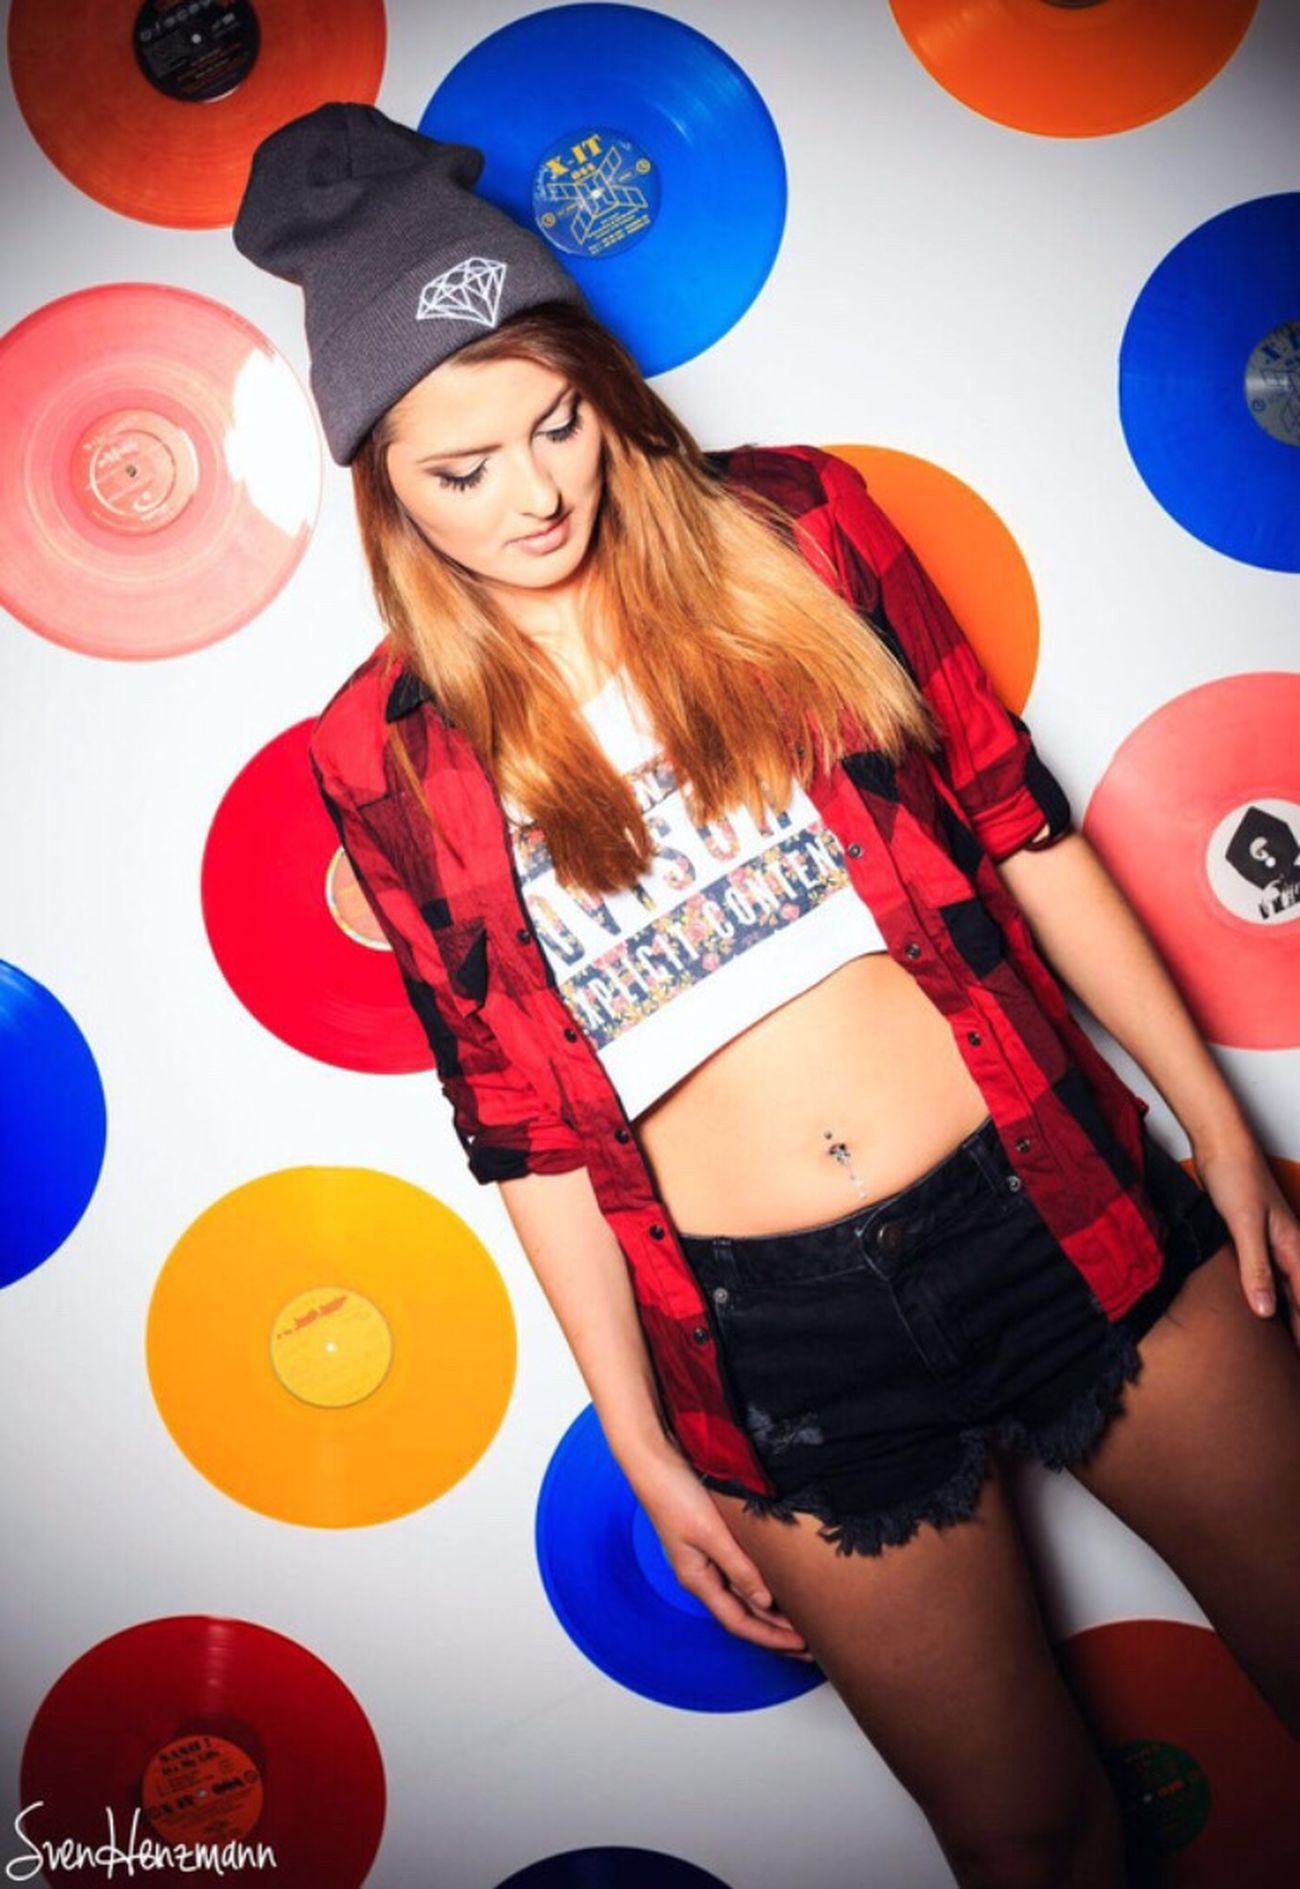 Me Vinyl HipHop Rnb Djane Mixmusix Lovely Look Posing Make Up Fotoshooting Girl Hobby Outfit Style Photooftheday Fotography Pose Fotograf Indoorshooting Colours Bunt Vinylwand Lässig Mütze